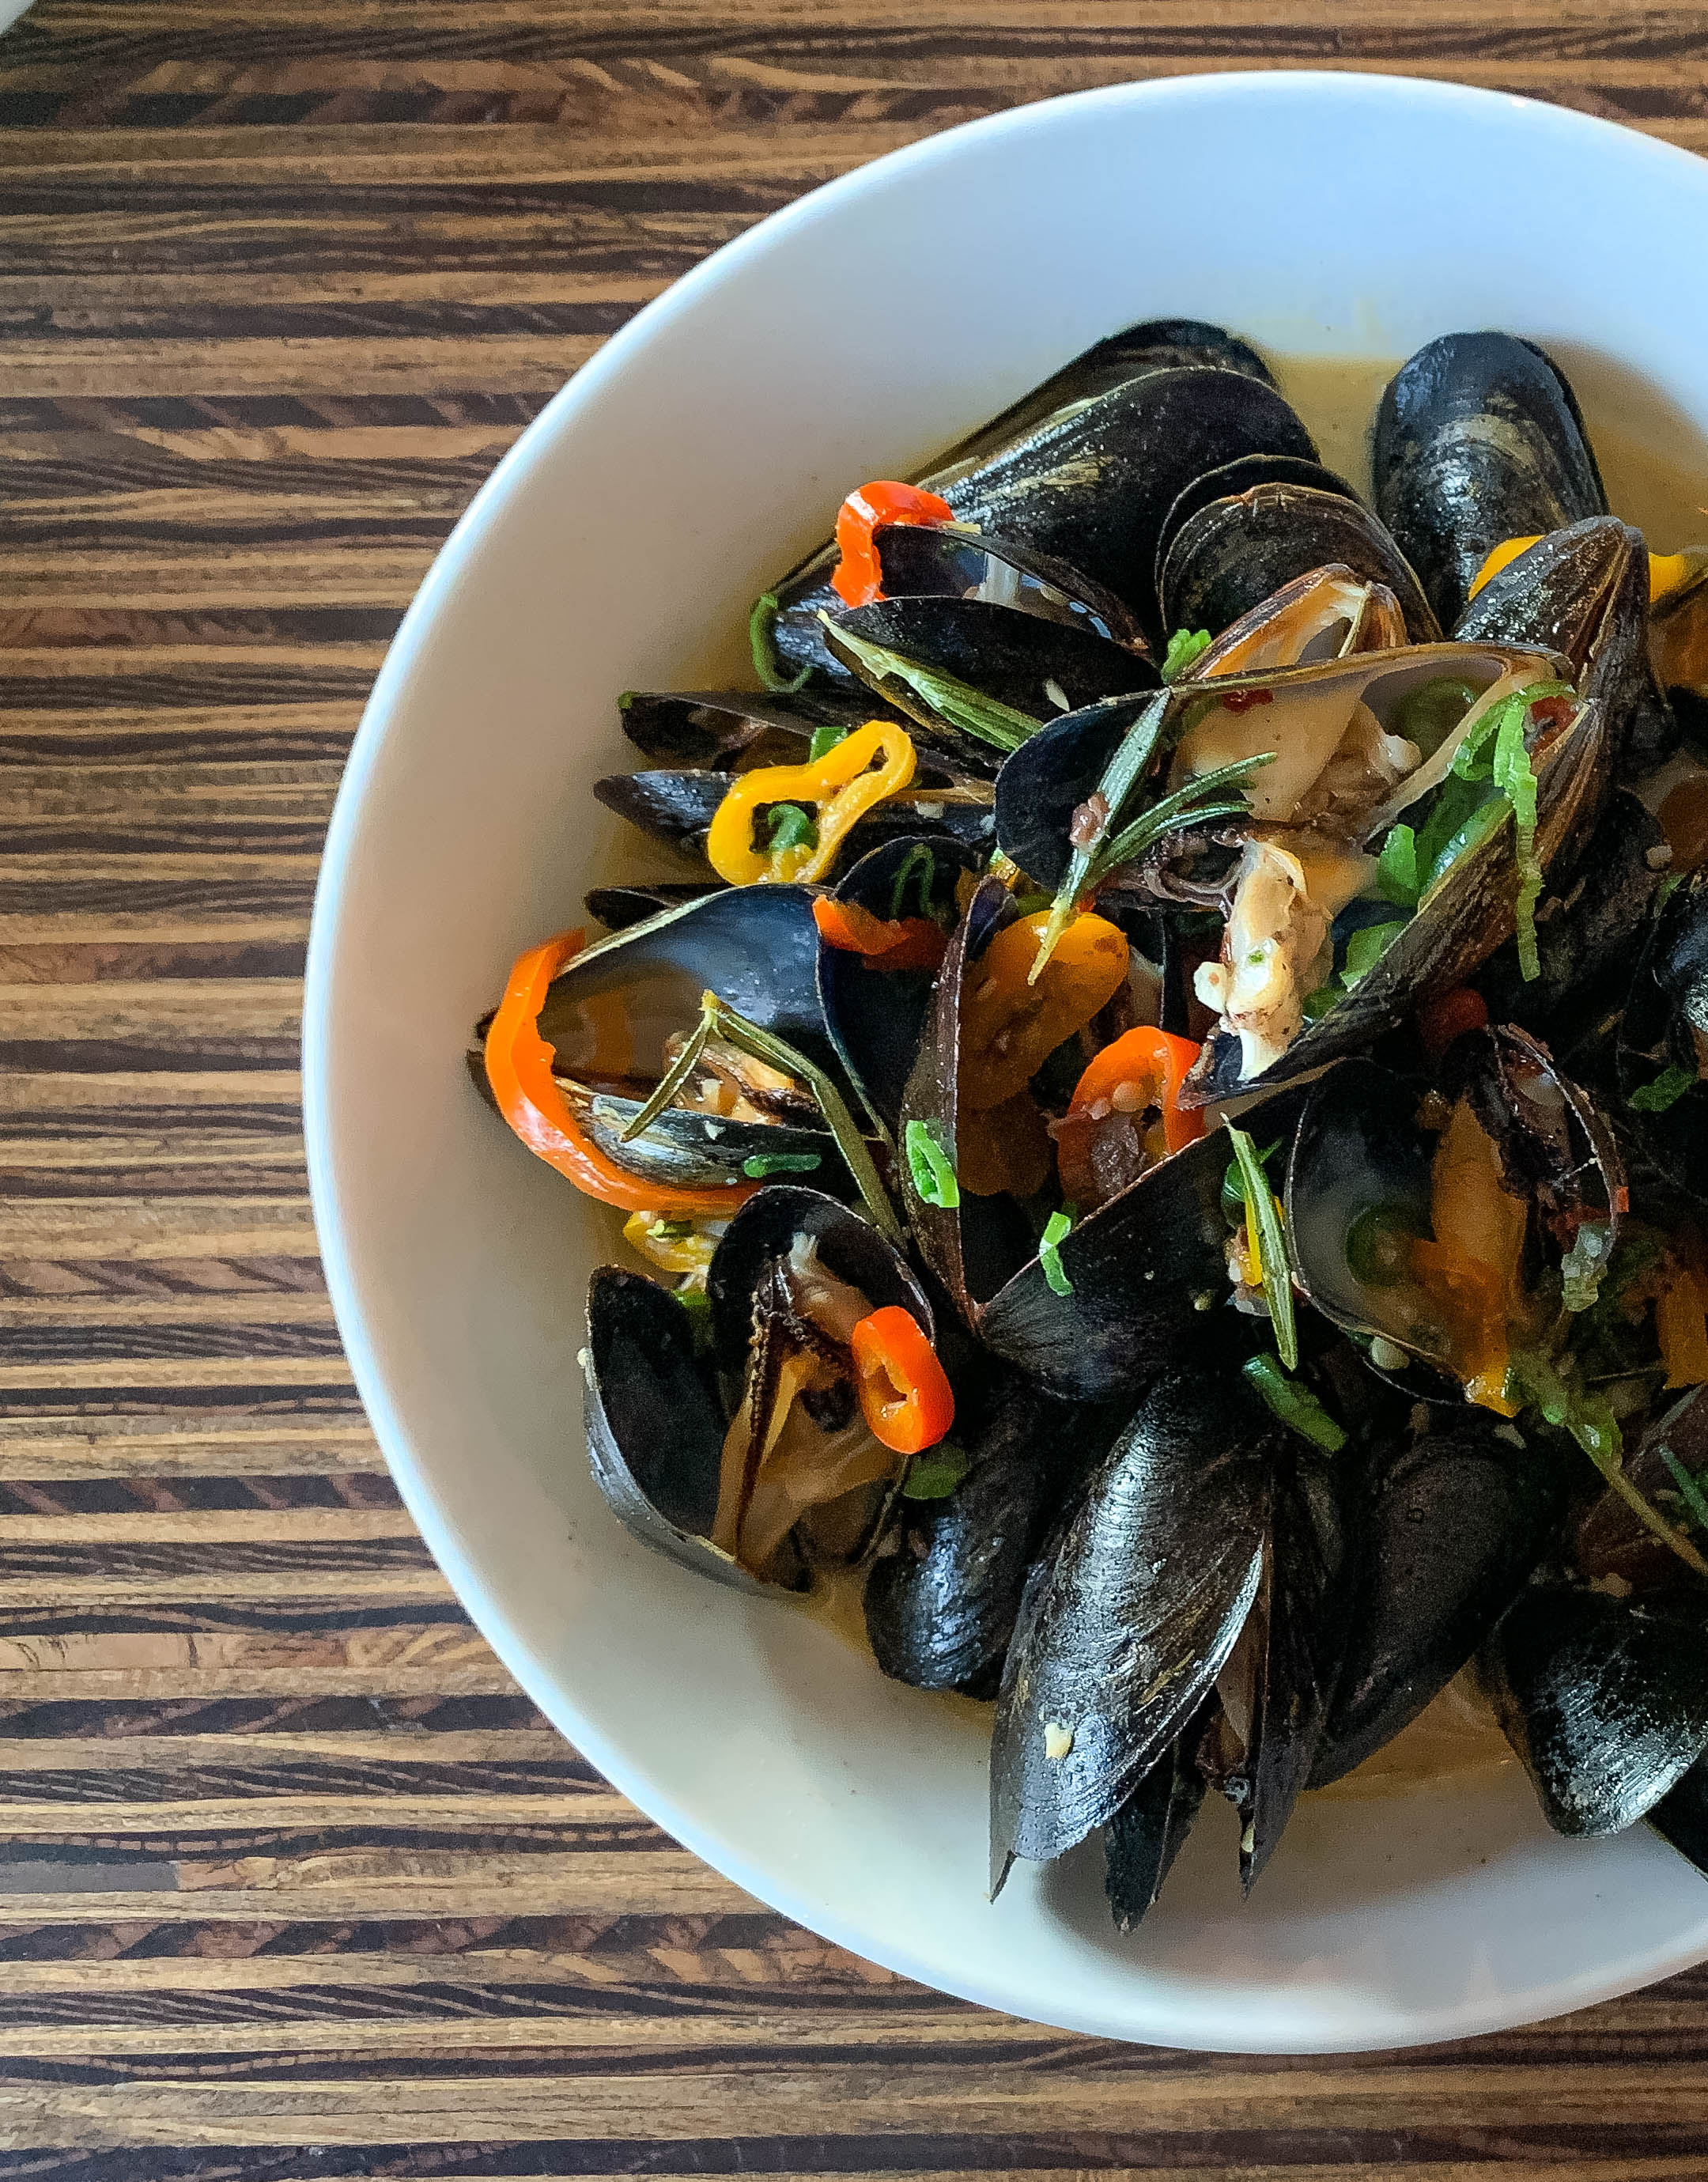 Mussels with rosemary and white wine, pickled sweet peppers, anchovy, touch of butter